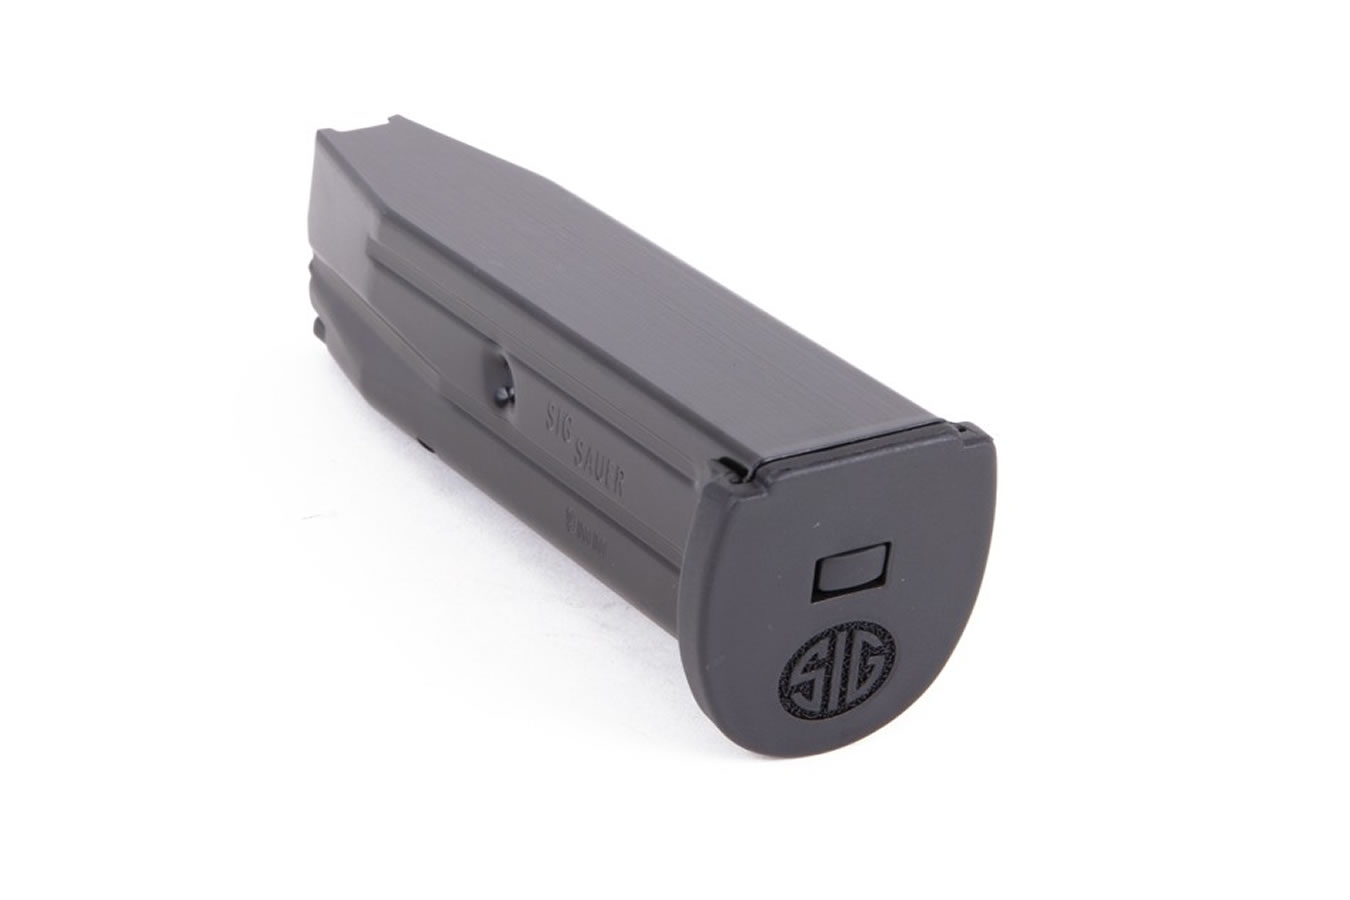 SIG SAUER P320 FULL-SIZE 9MM 10 RD MAGAZINE